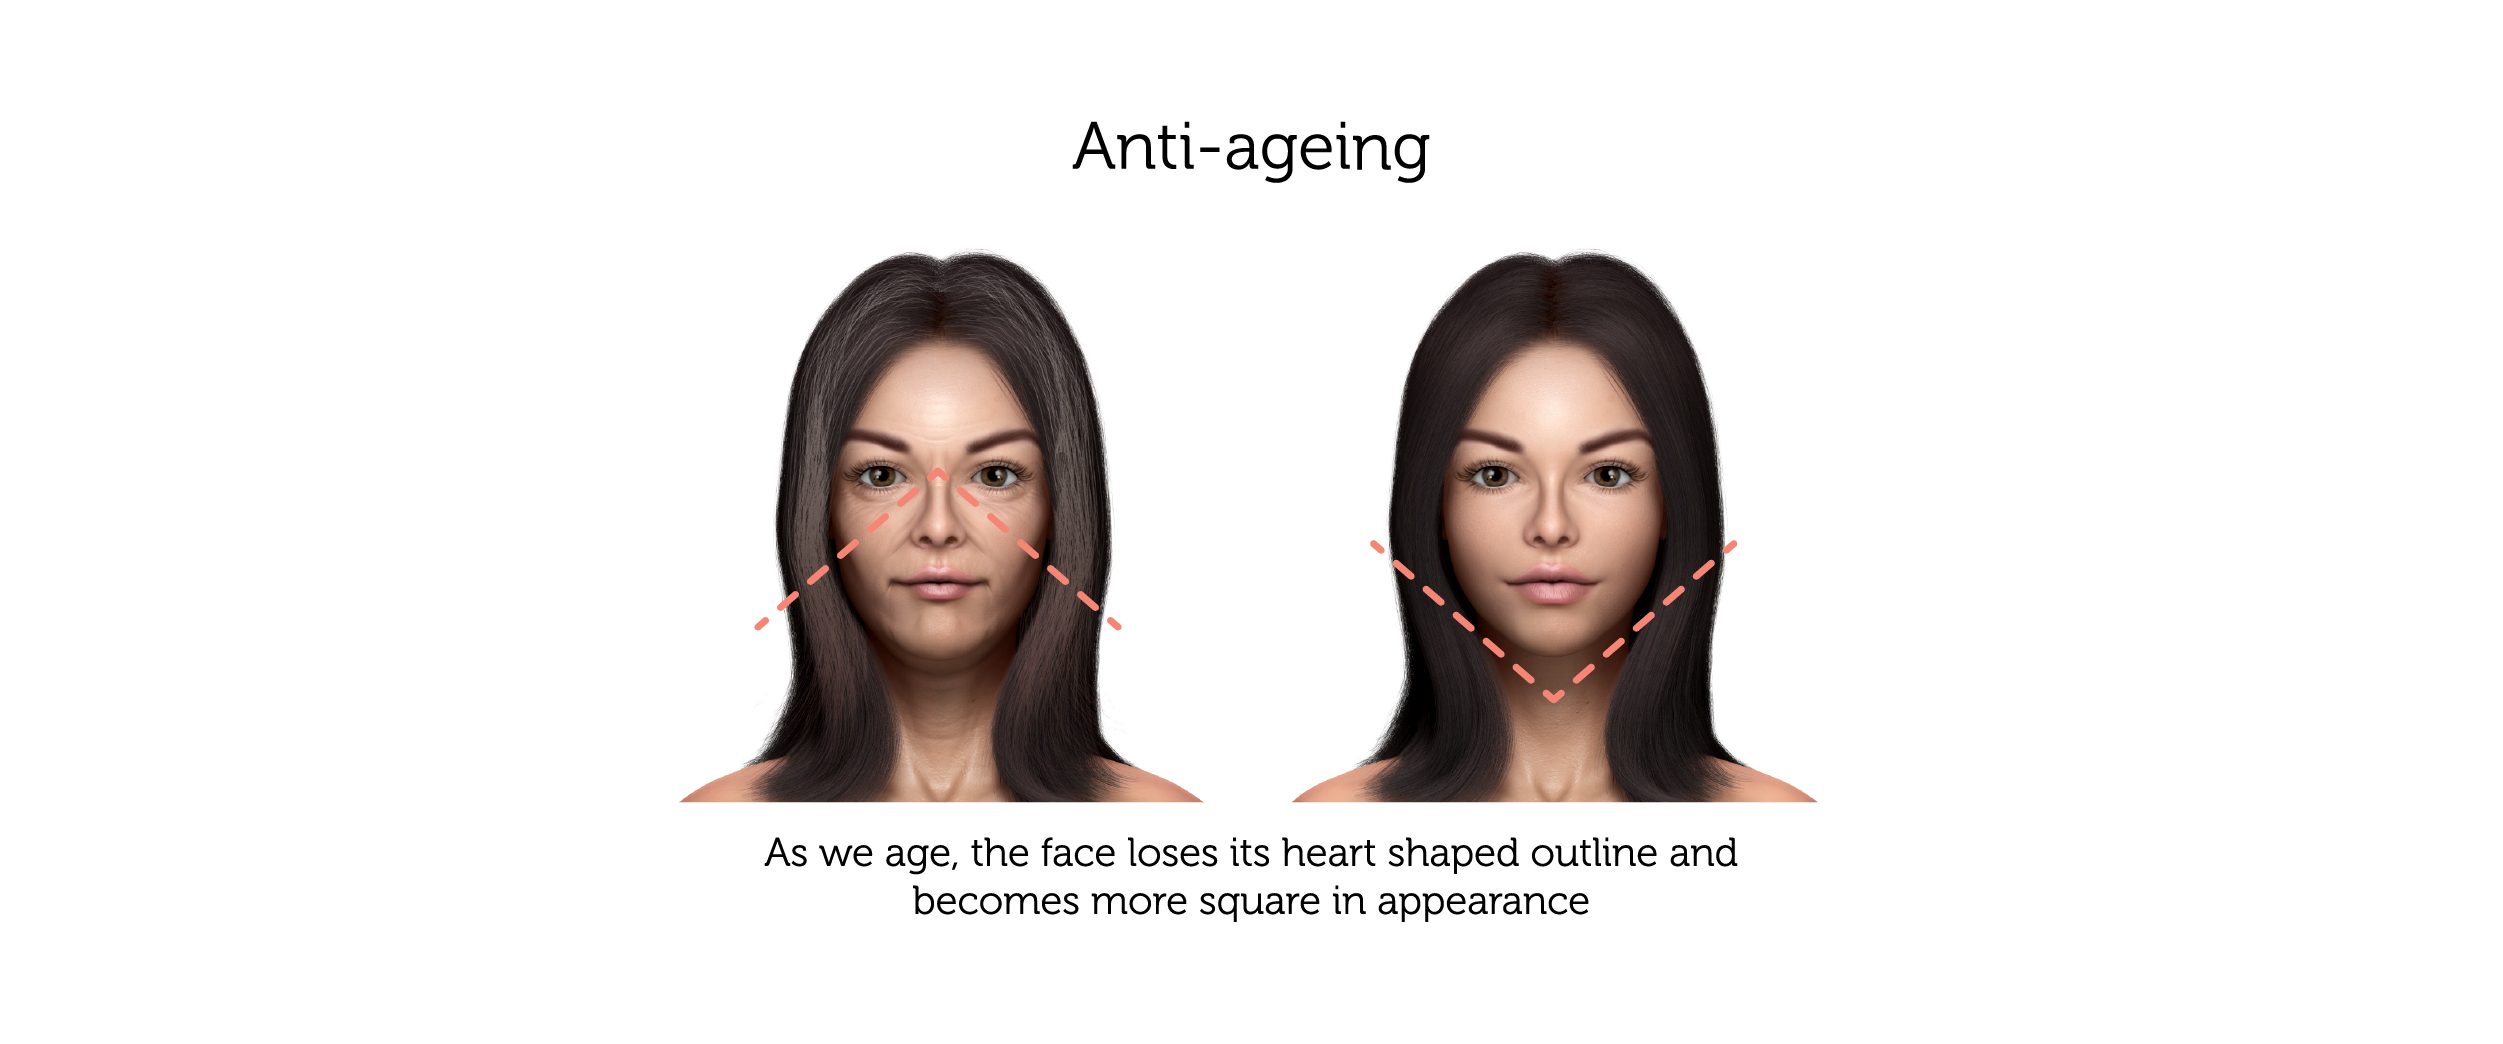 Anti-Ageing (Female) 2-01